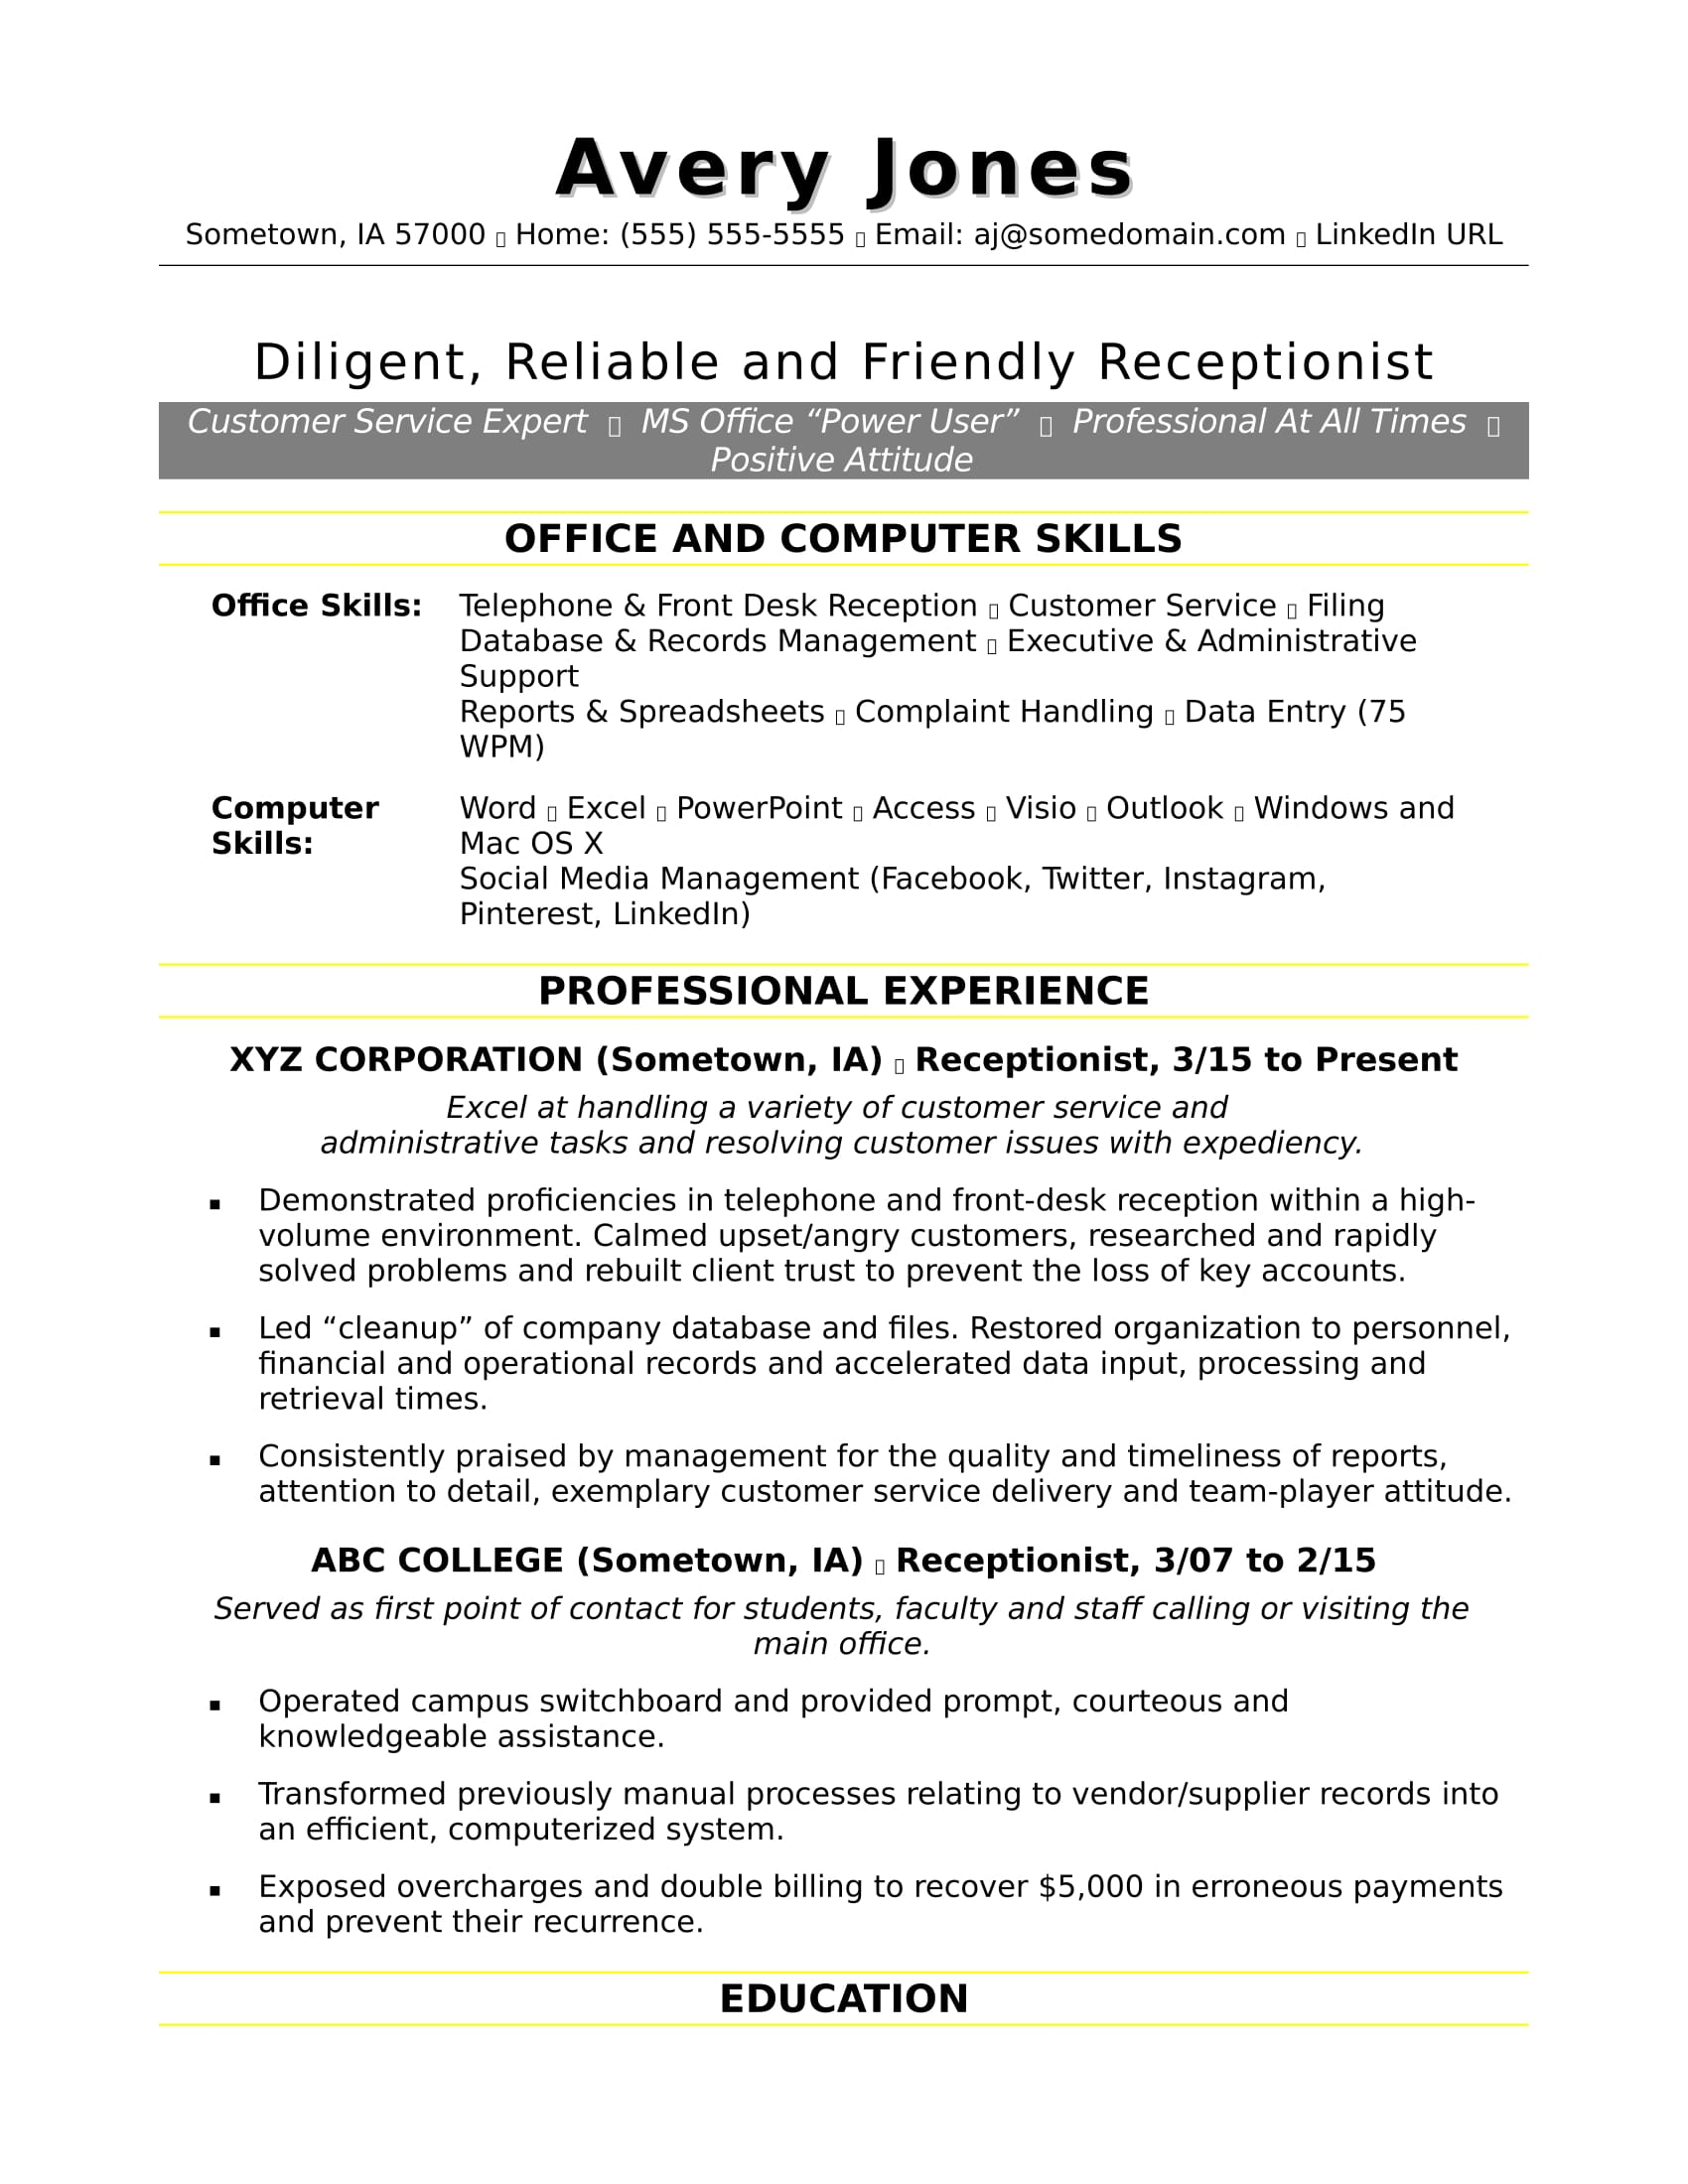 Sample Resume For A Receptionist  Computer Skills To Put On Resume